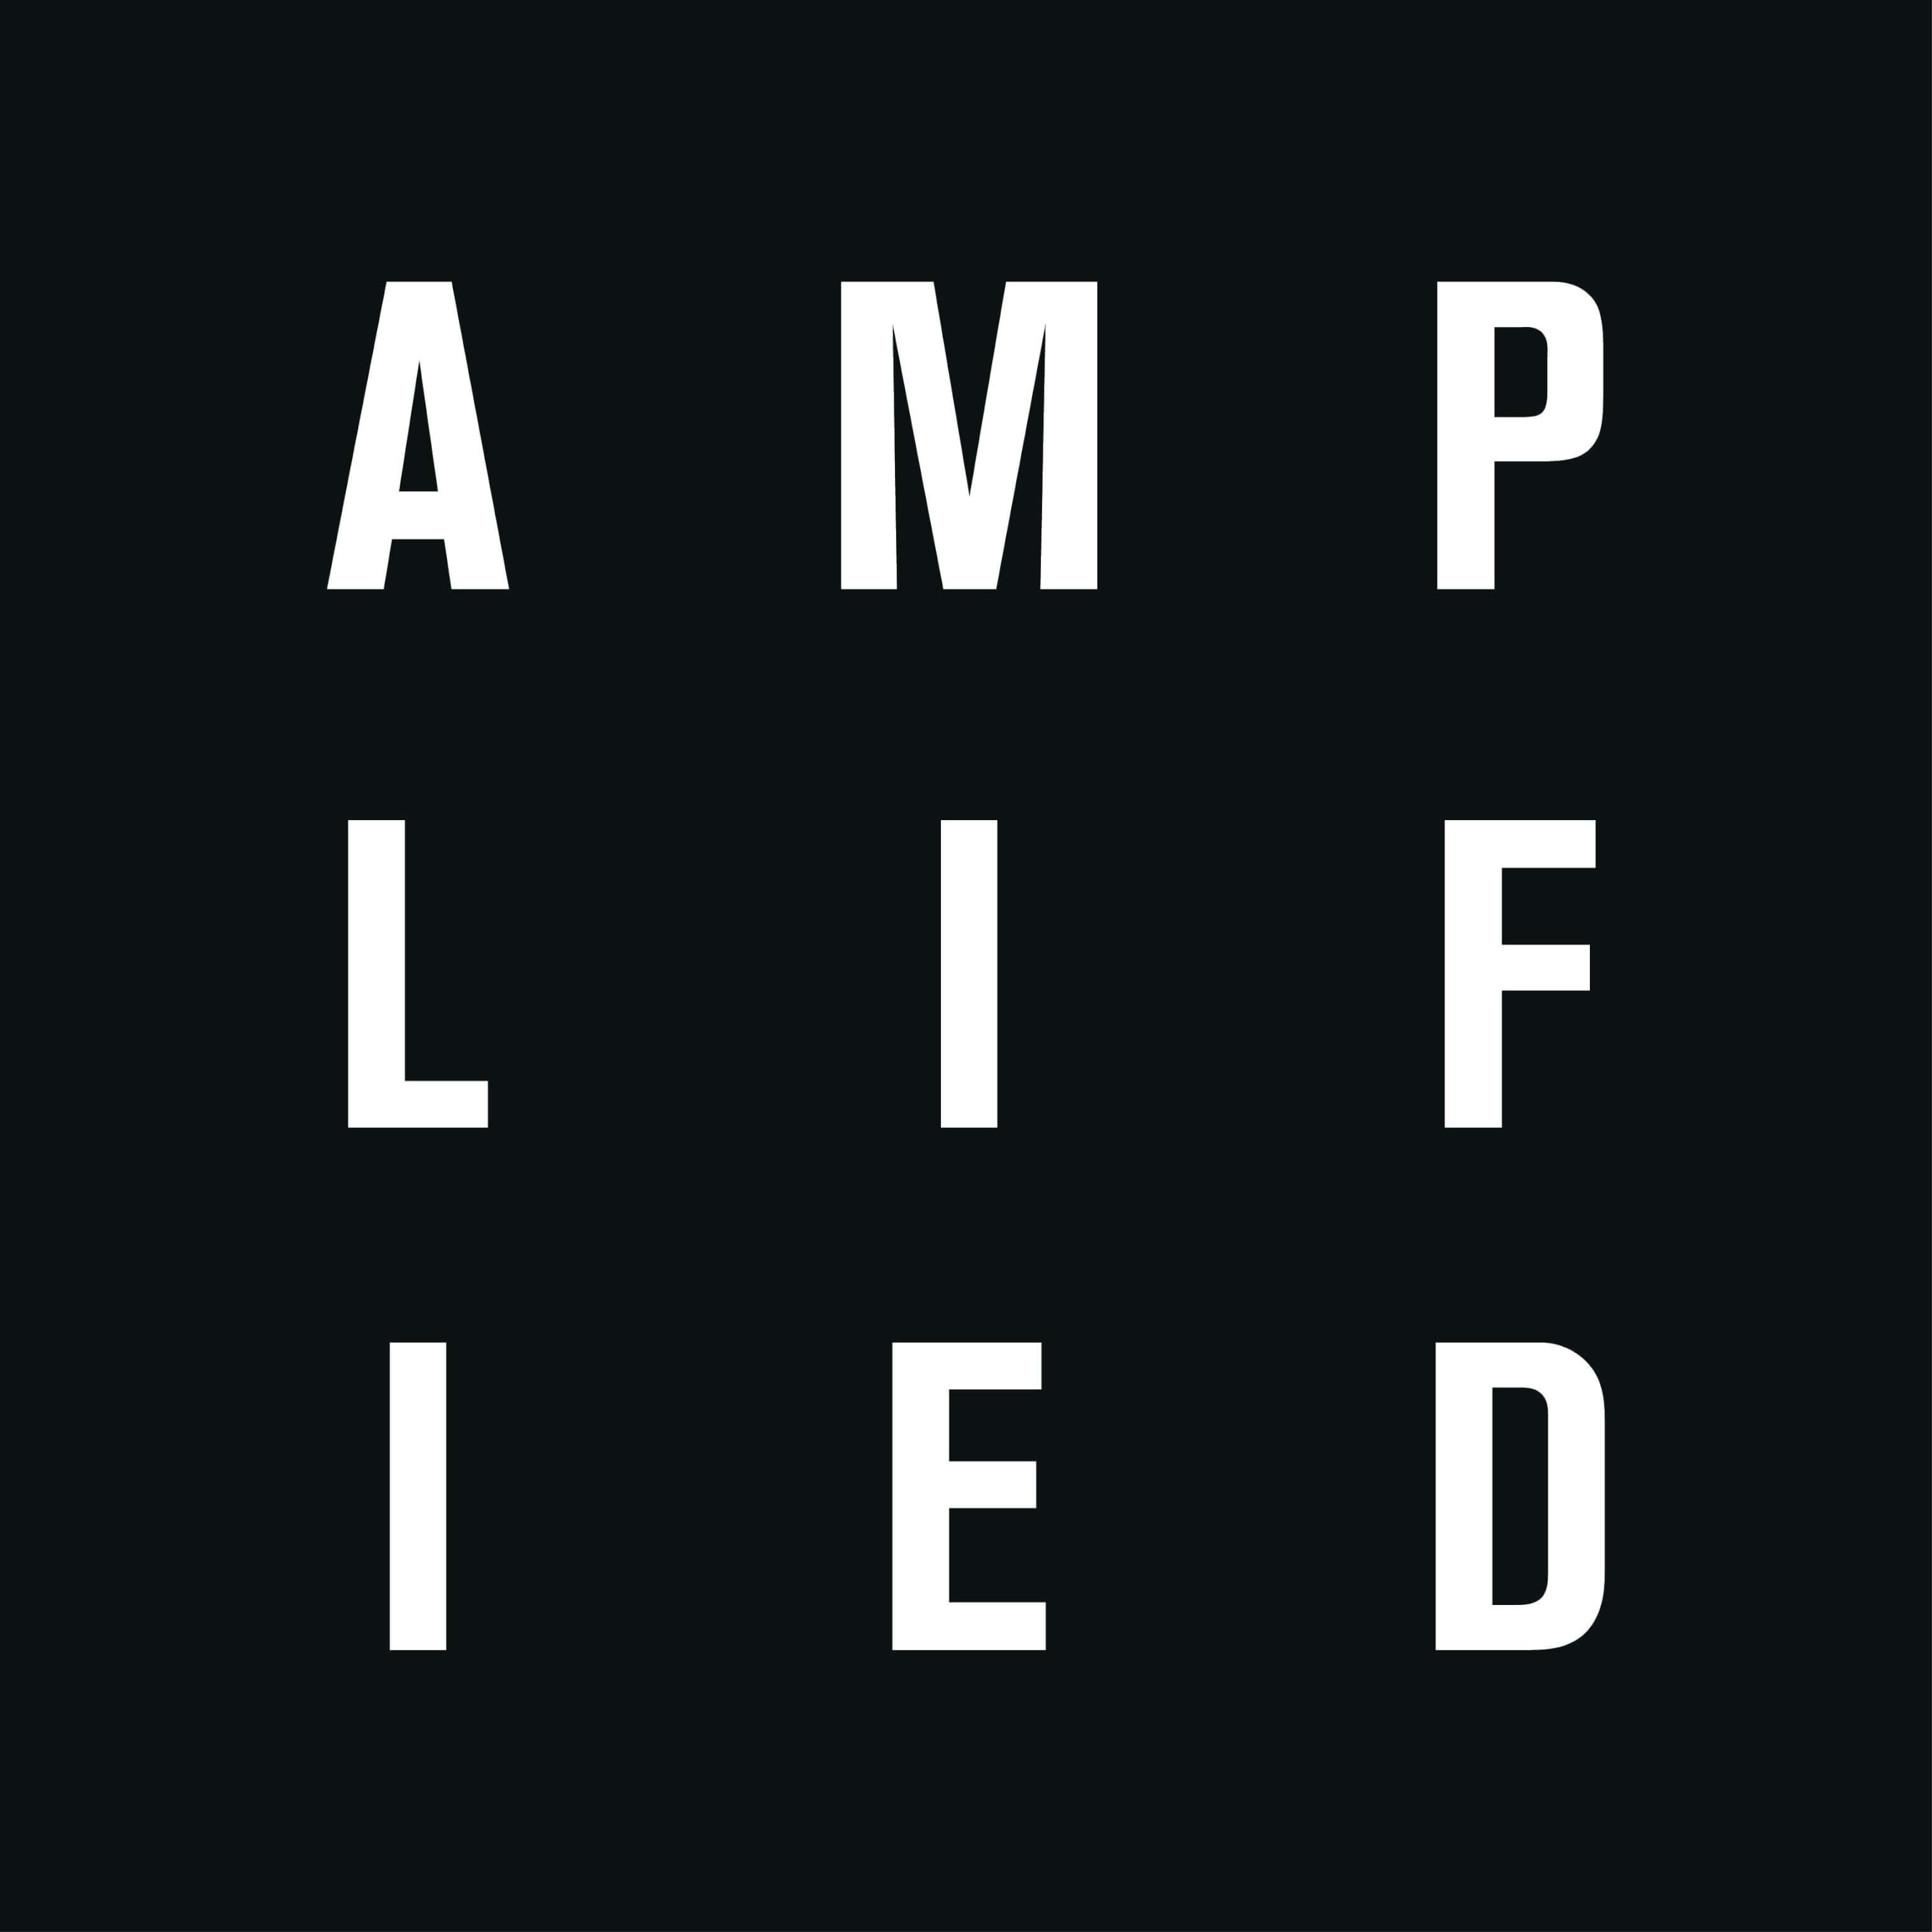 Amplified - Logo